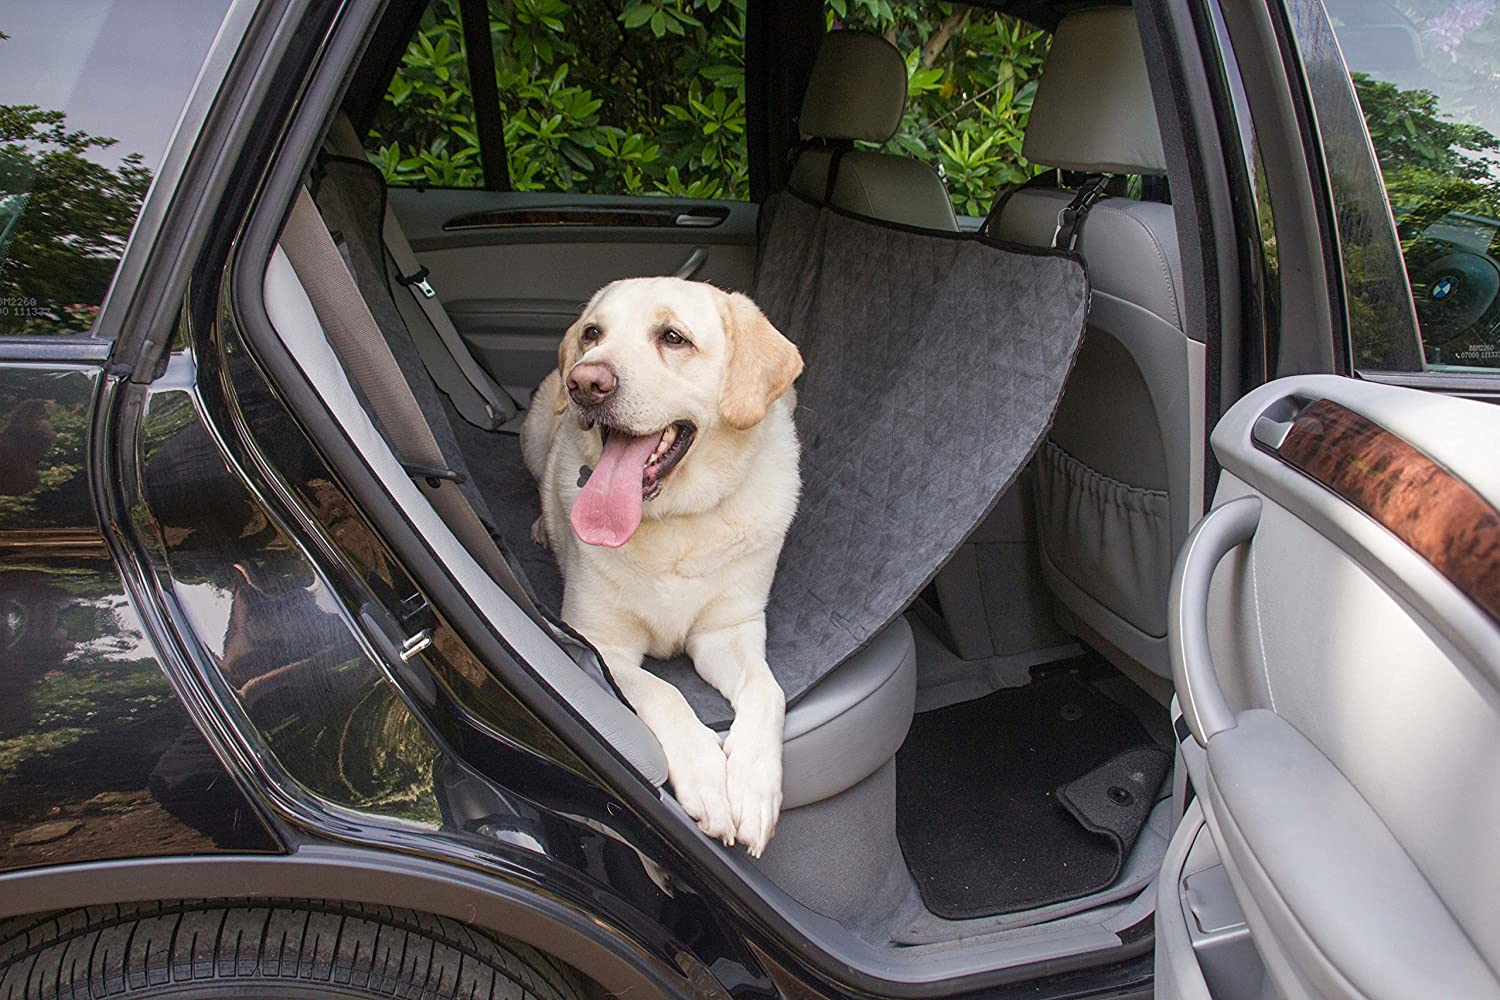 Pets Finest Deluxe Quality Luxury Dog Pet Kids Car Seat Cover Back Rear Seat Protector /& Hammock Made Of Soft /& Durable Suede Anti-Slip /& Scratch Resistant Proof